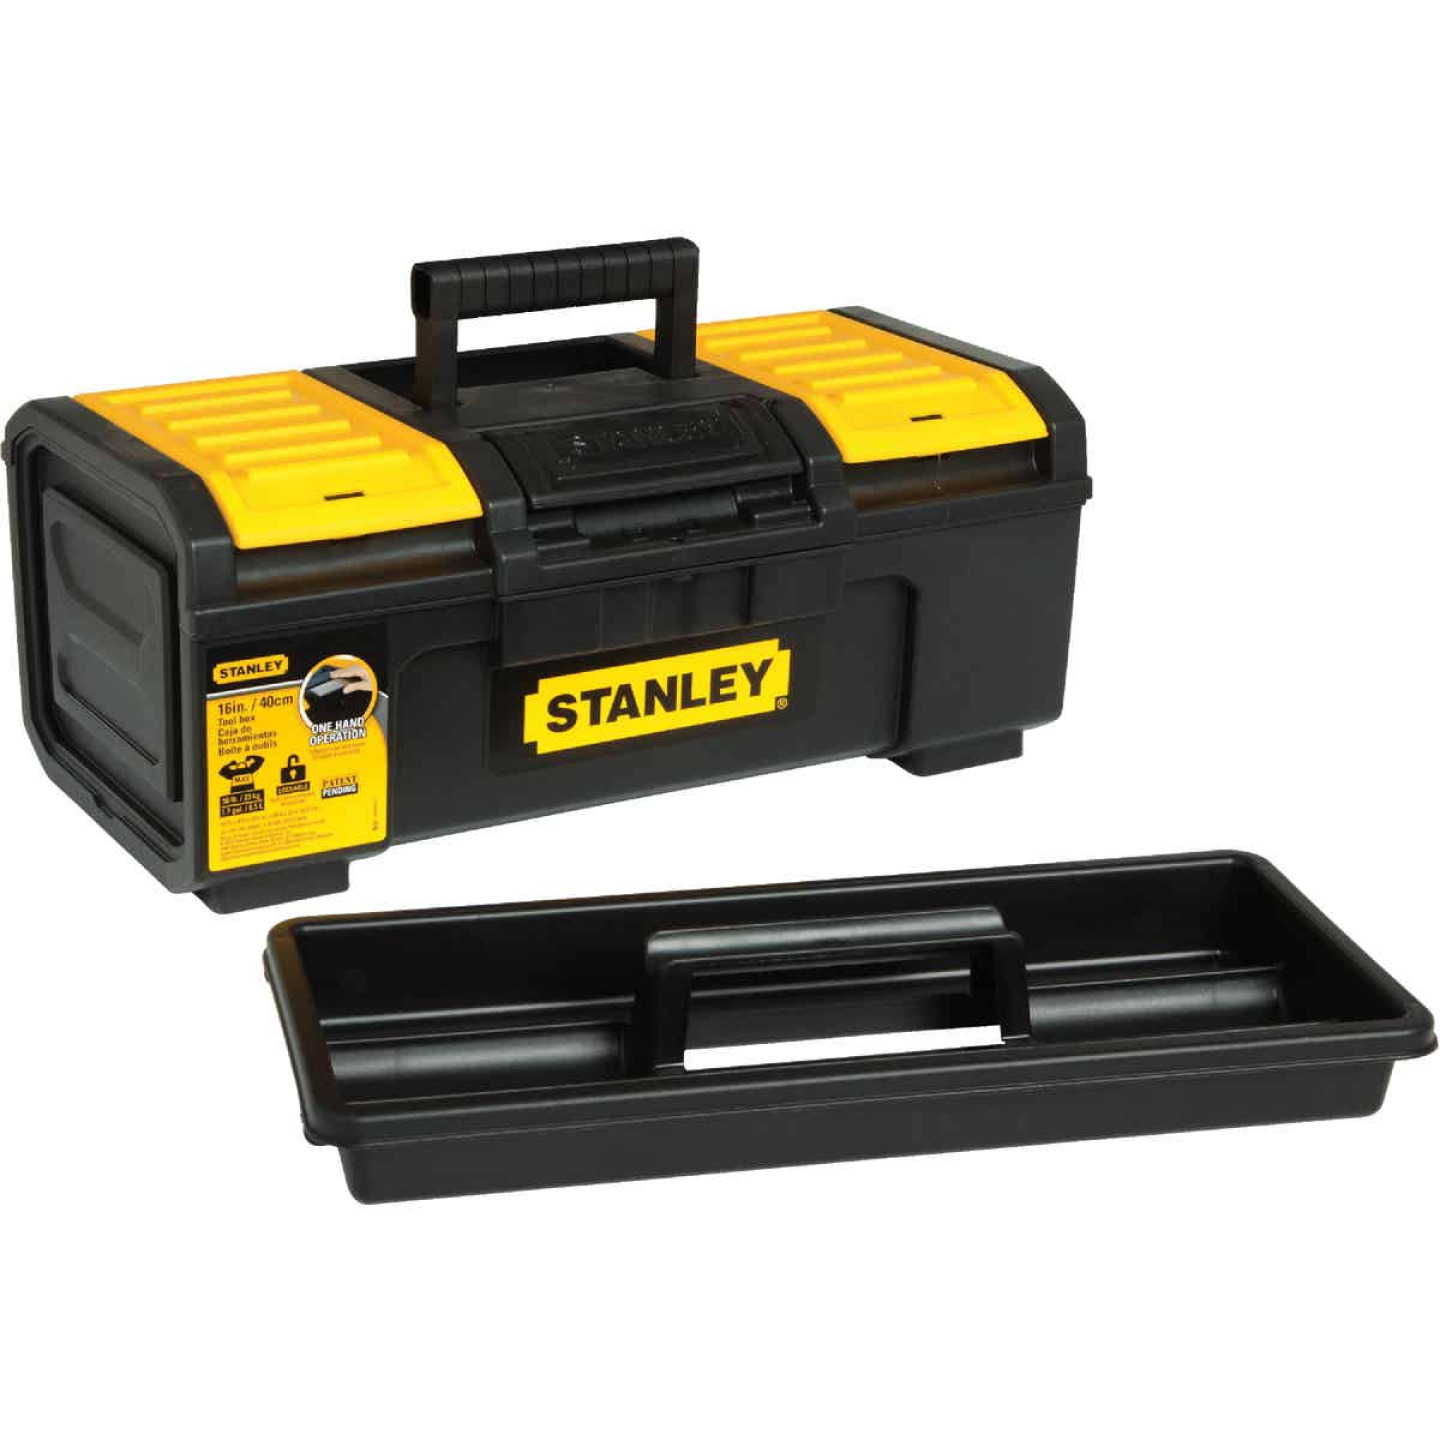 Stanley 16 In. Auto Latch Toolbox Image 1